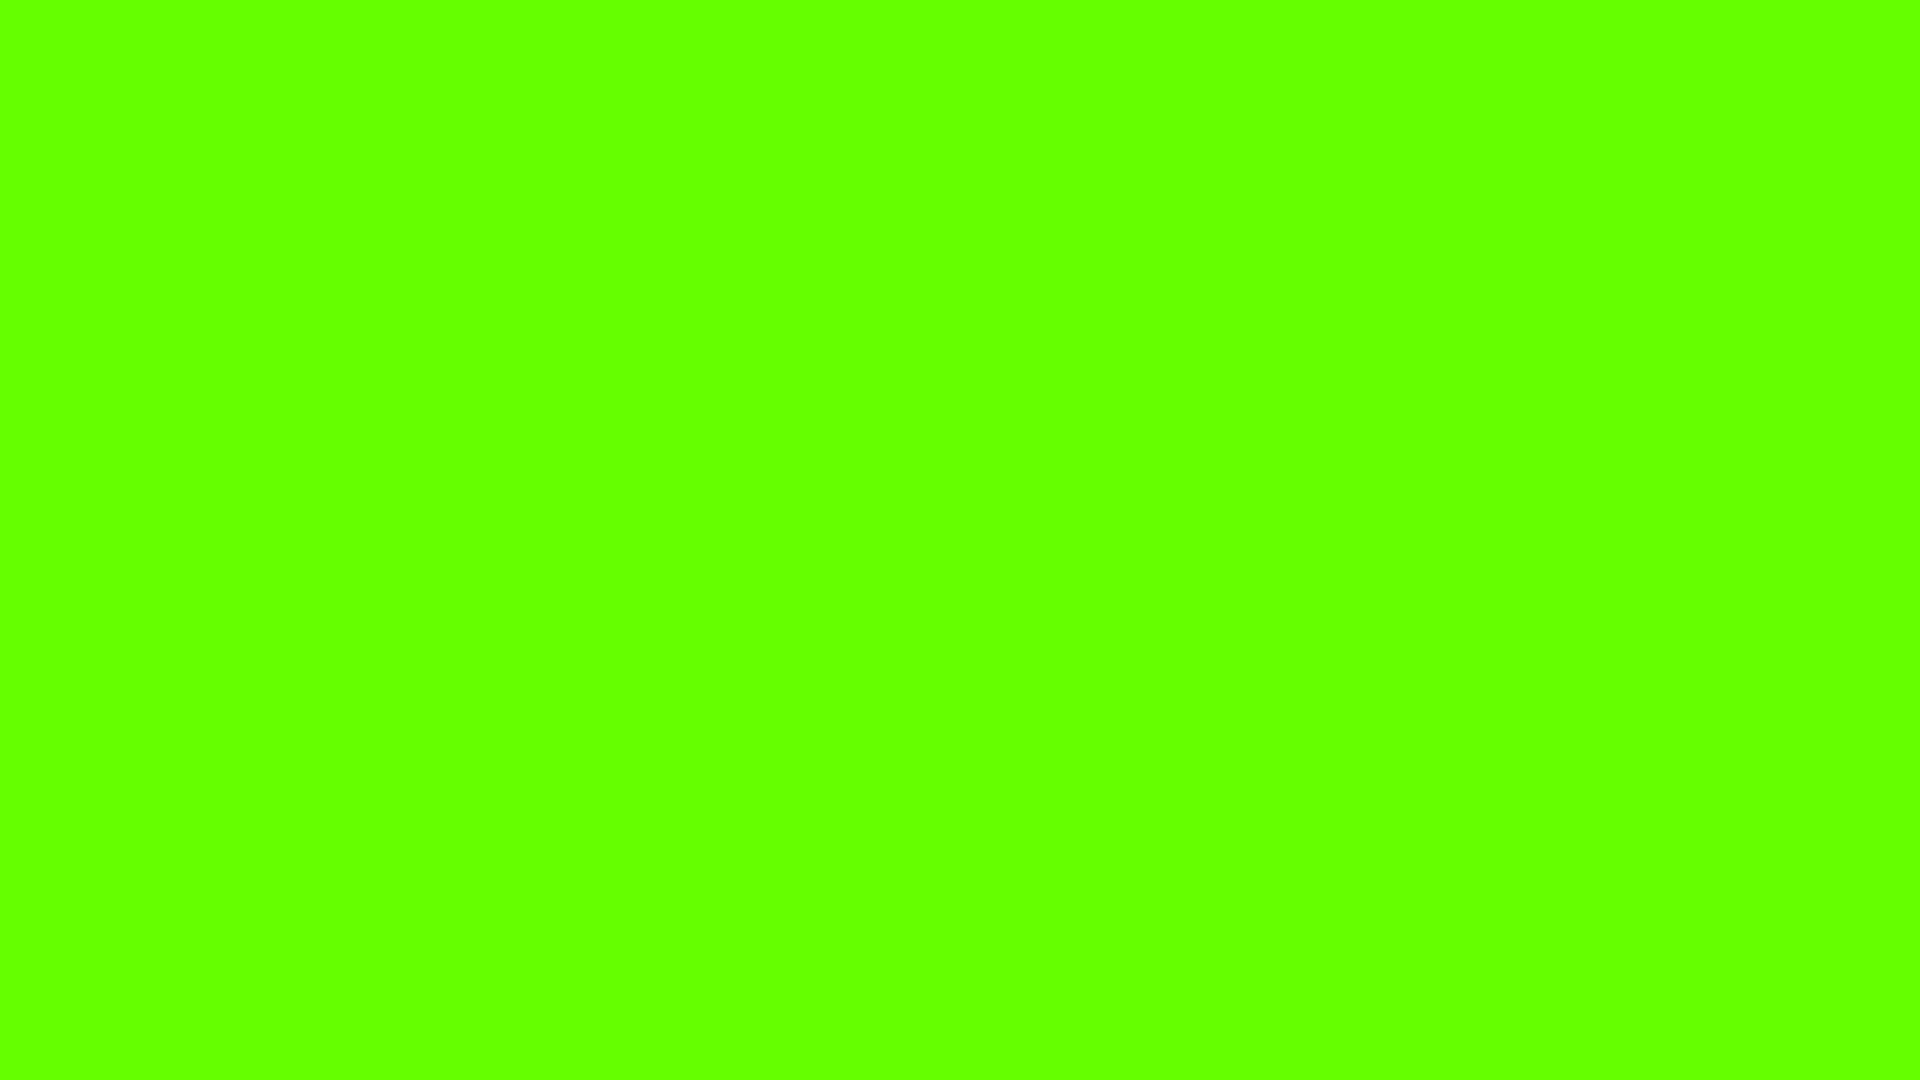 1920x1080 - Solid Green 5